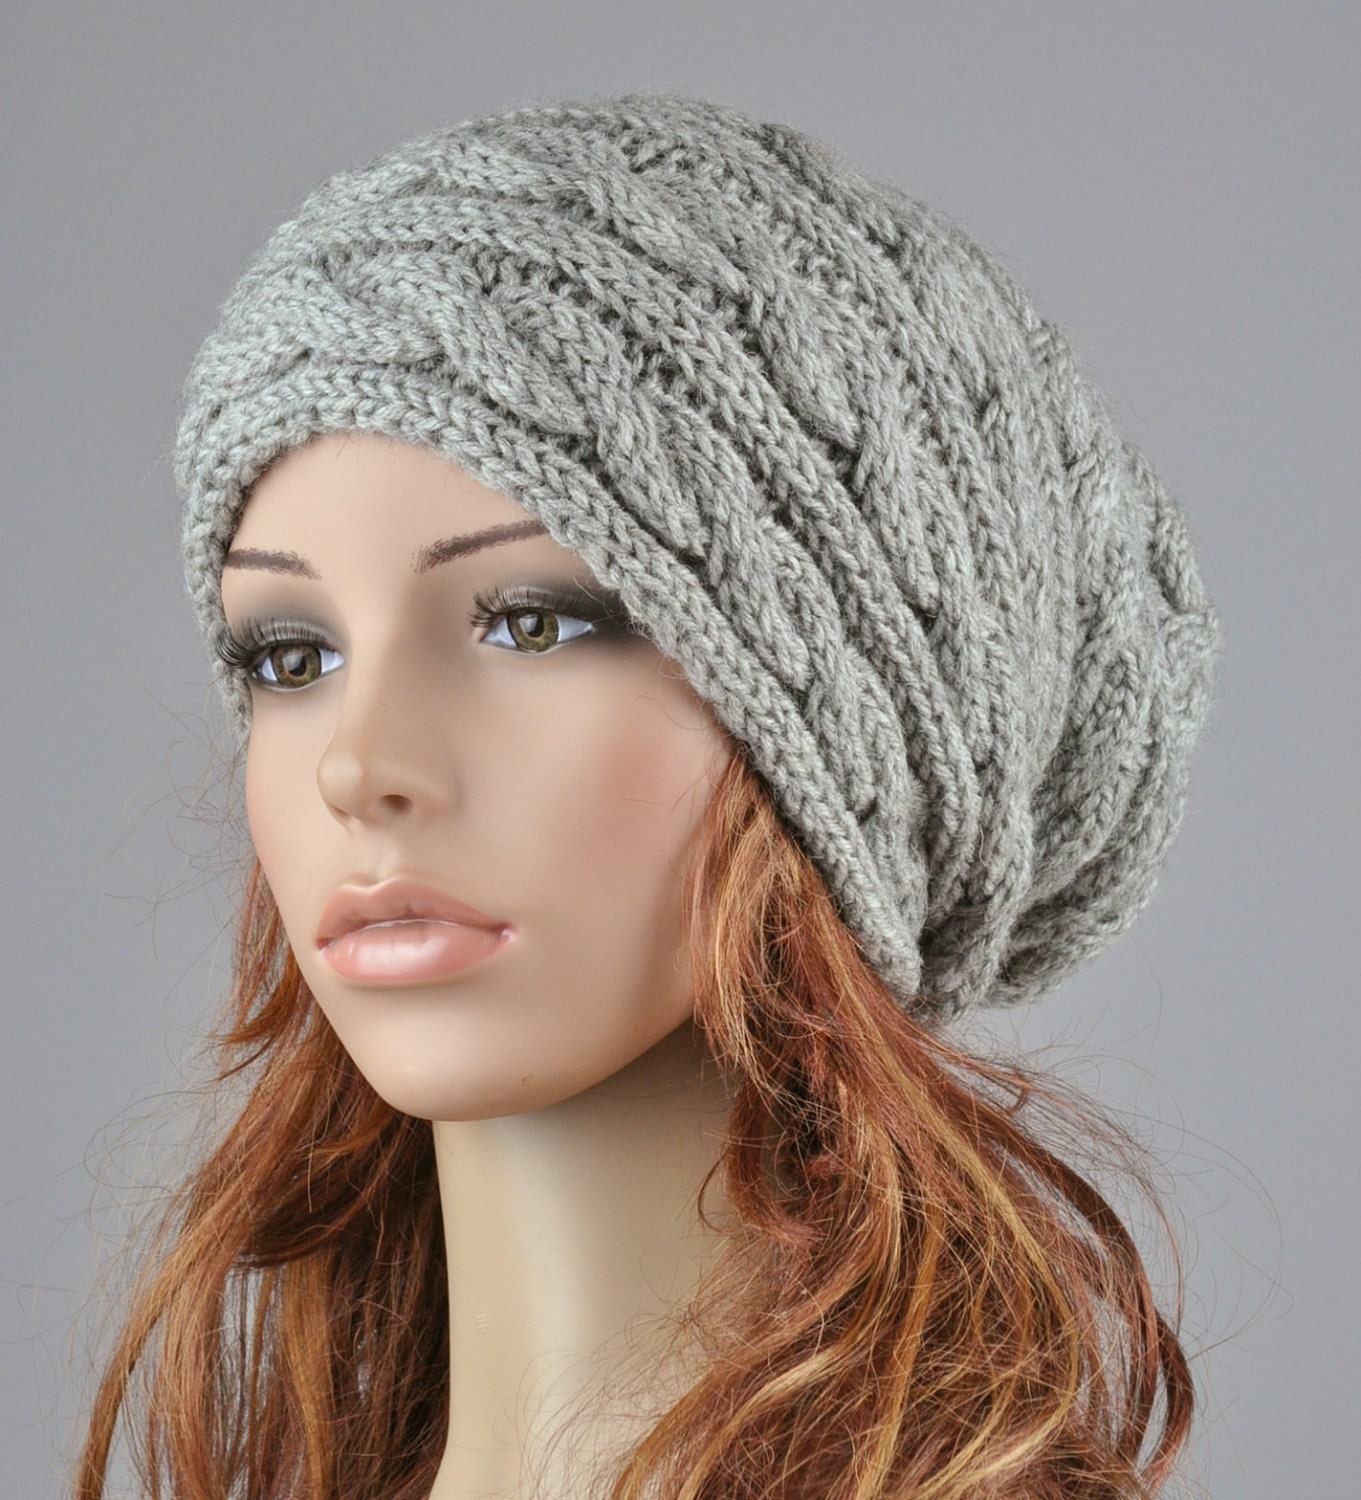 Knitting Patterns For Hats : Hand knit hat Grey hat slouchy hat cable pattern hat